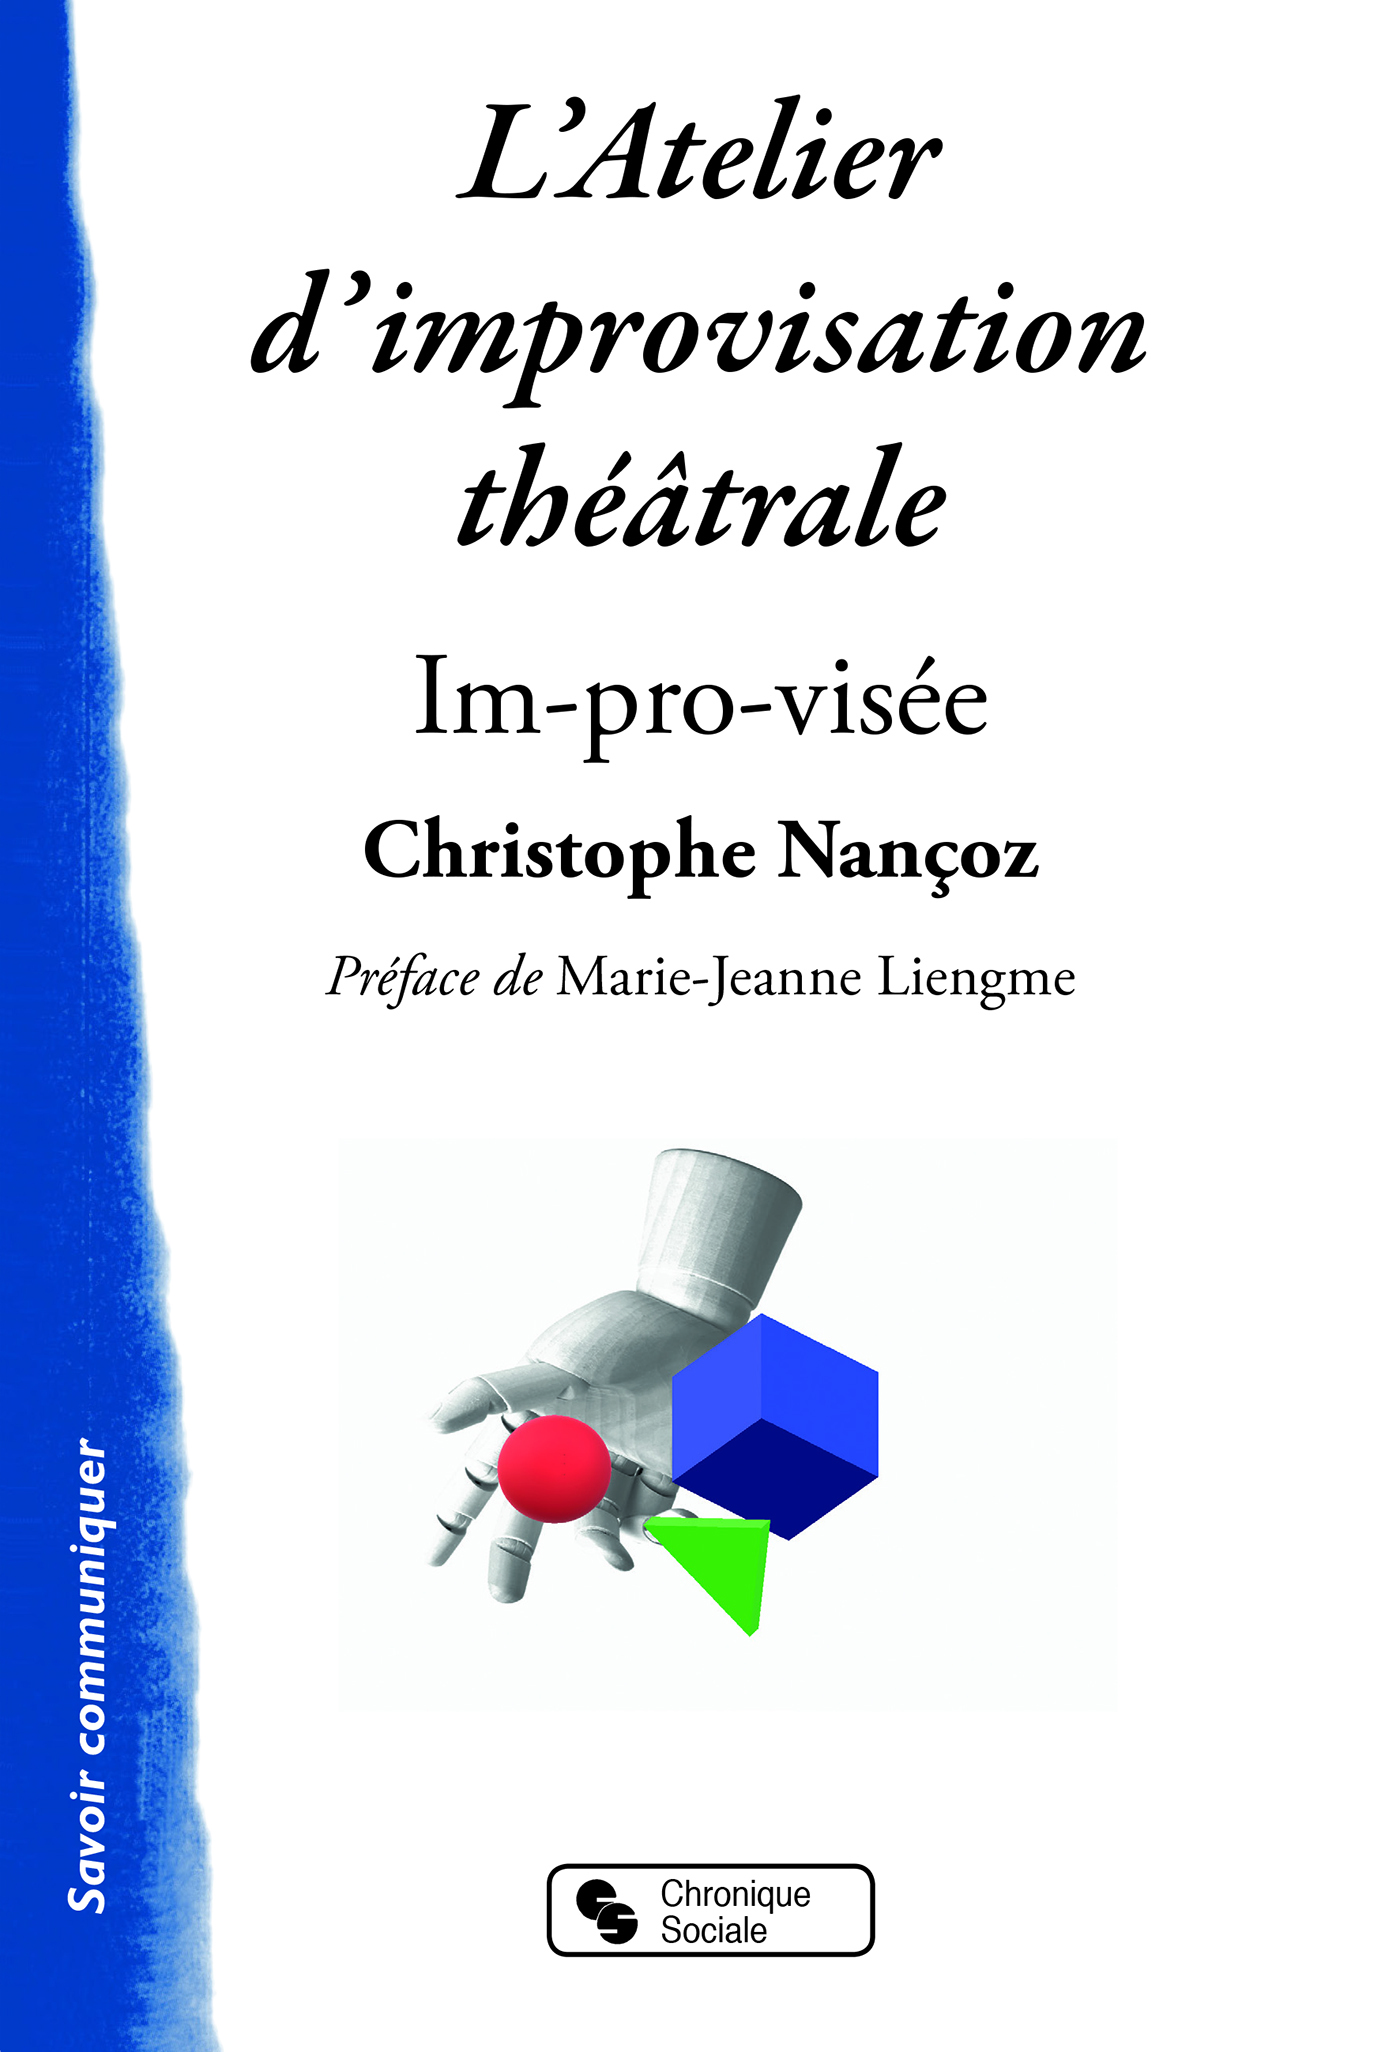 L'ATELIER D'IMPROVISATION THEATRALE